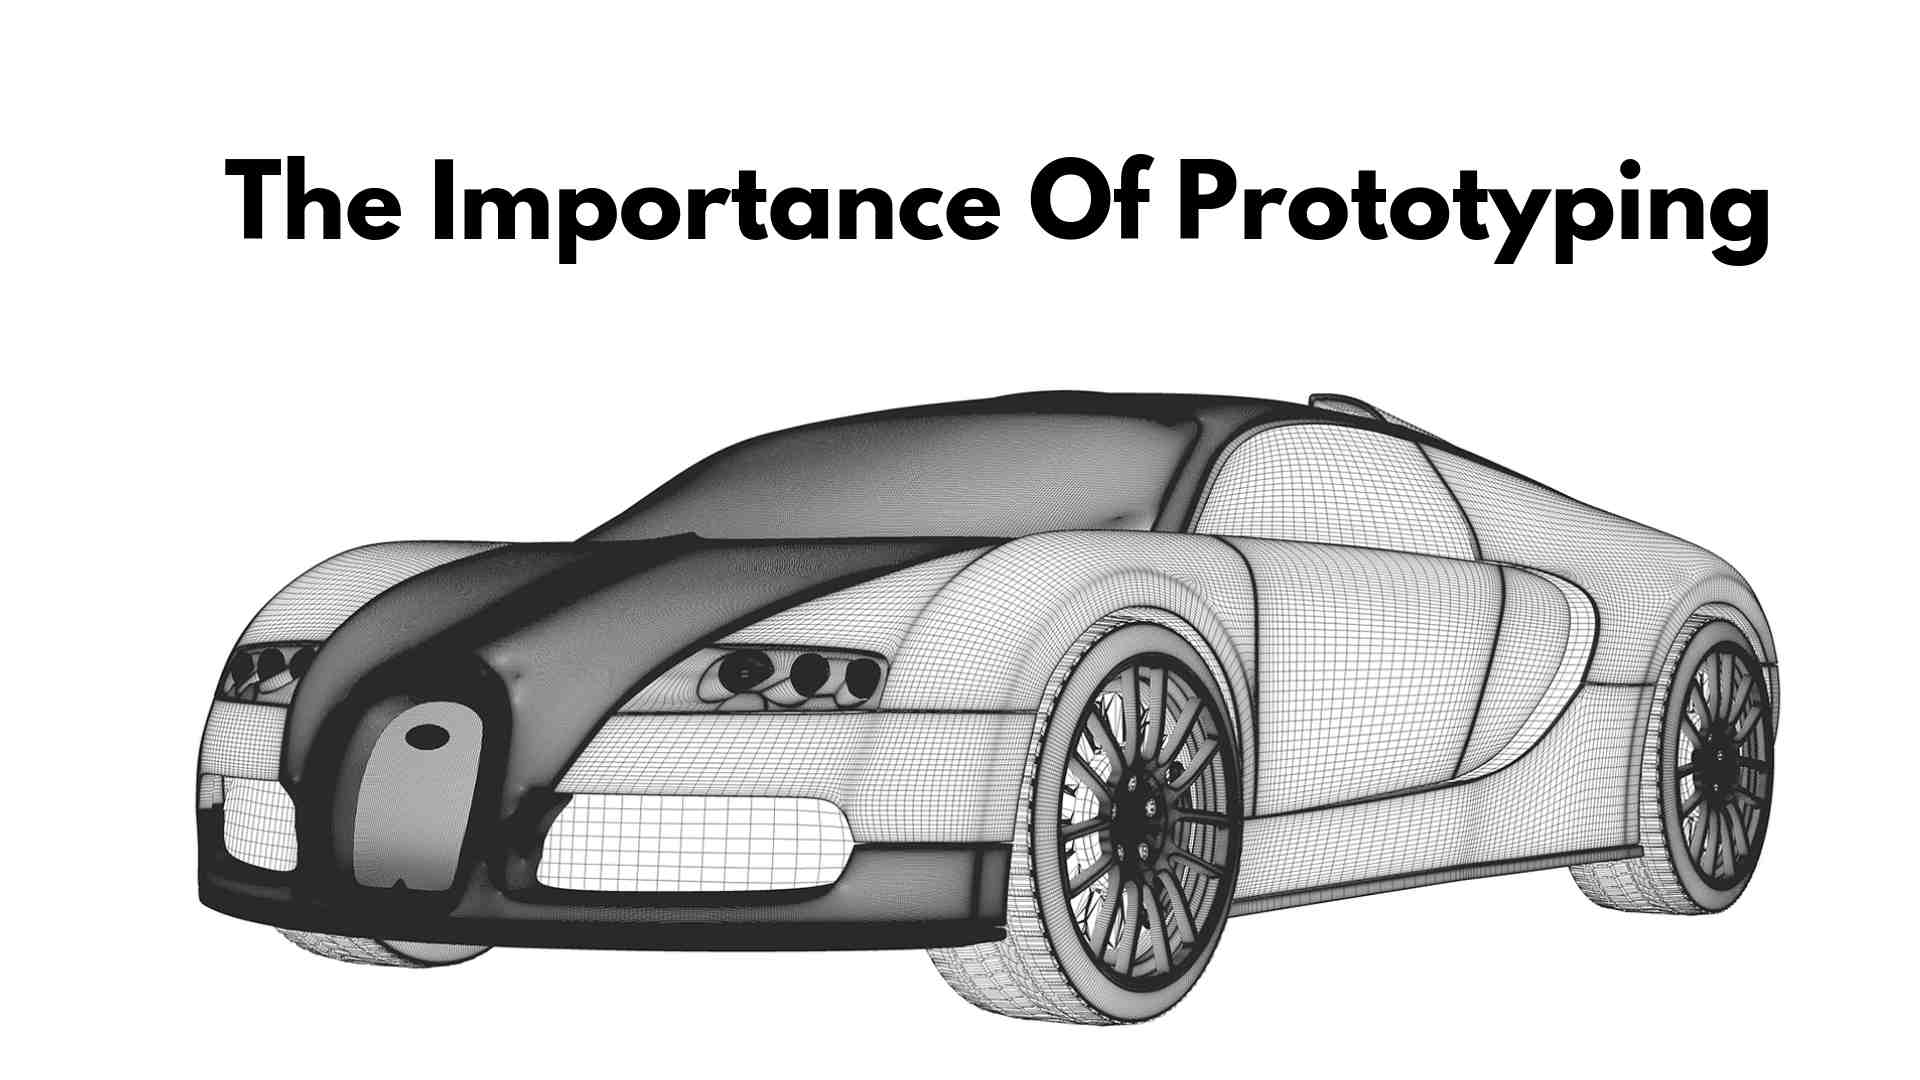 The Importance Of Prototyping